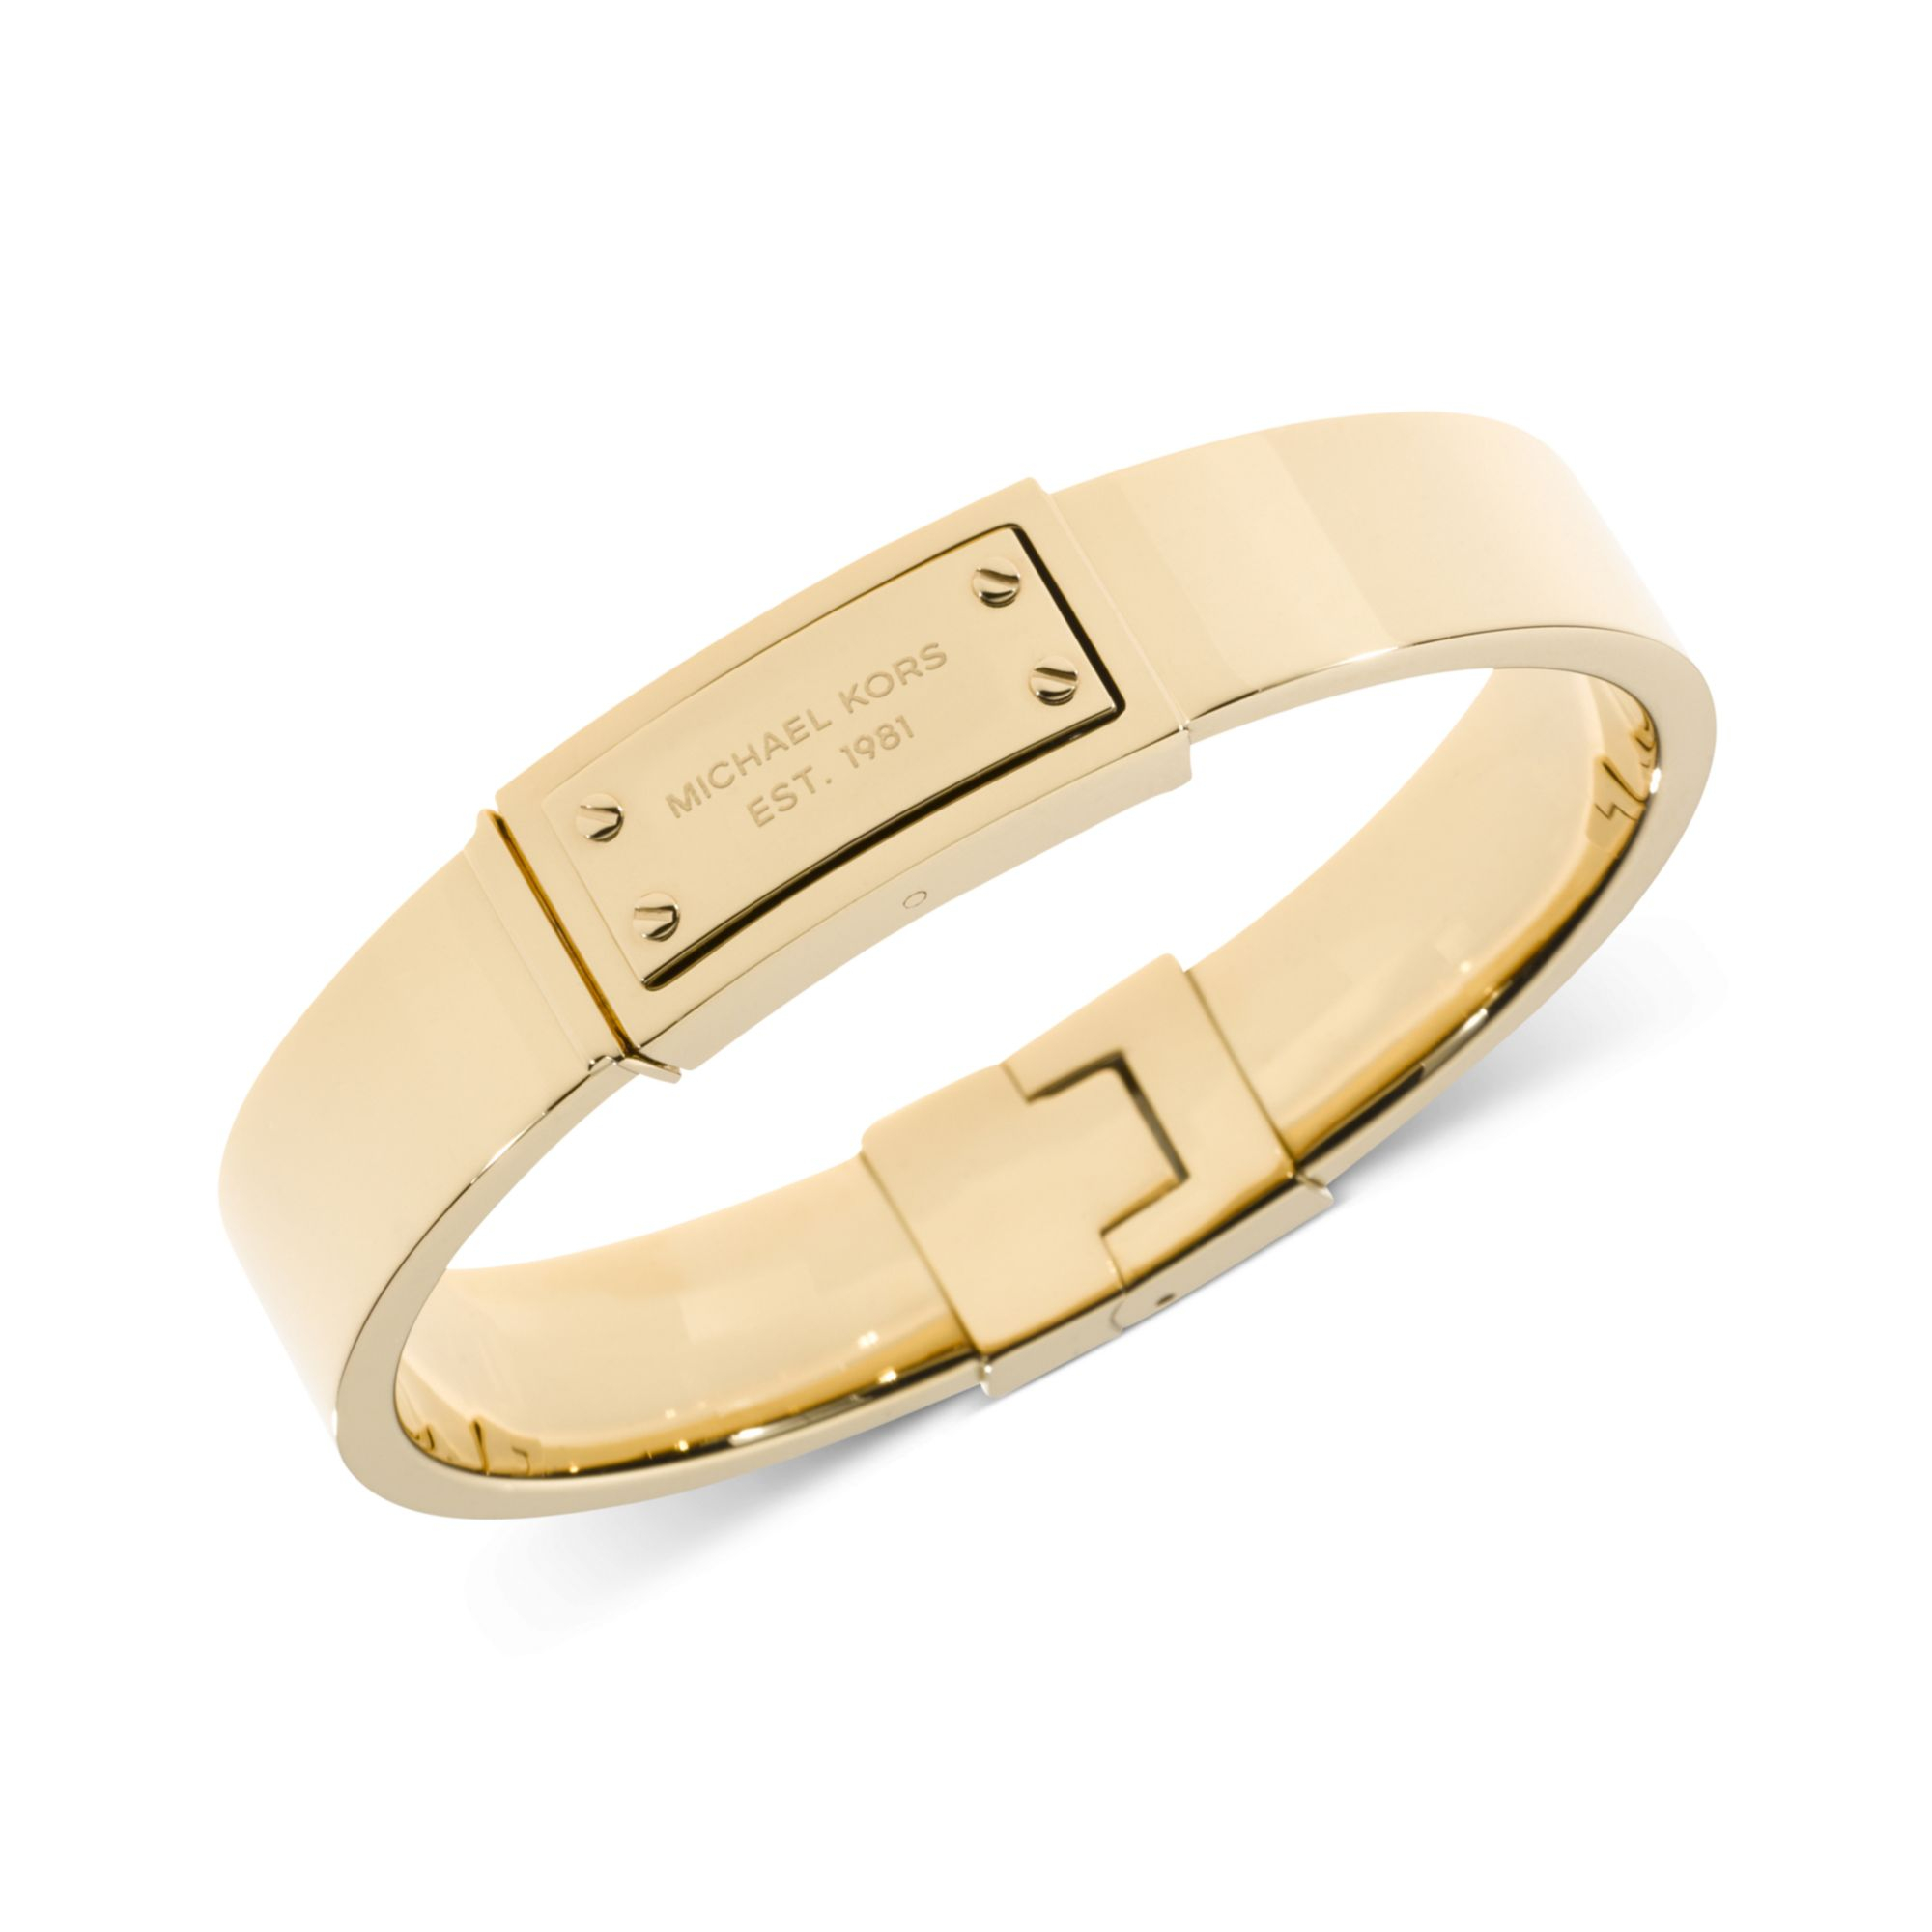 michael kors goldtone logo plaque bangle bracelet in gold